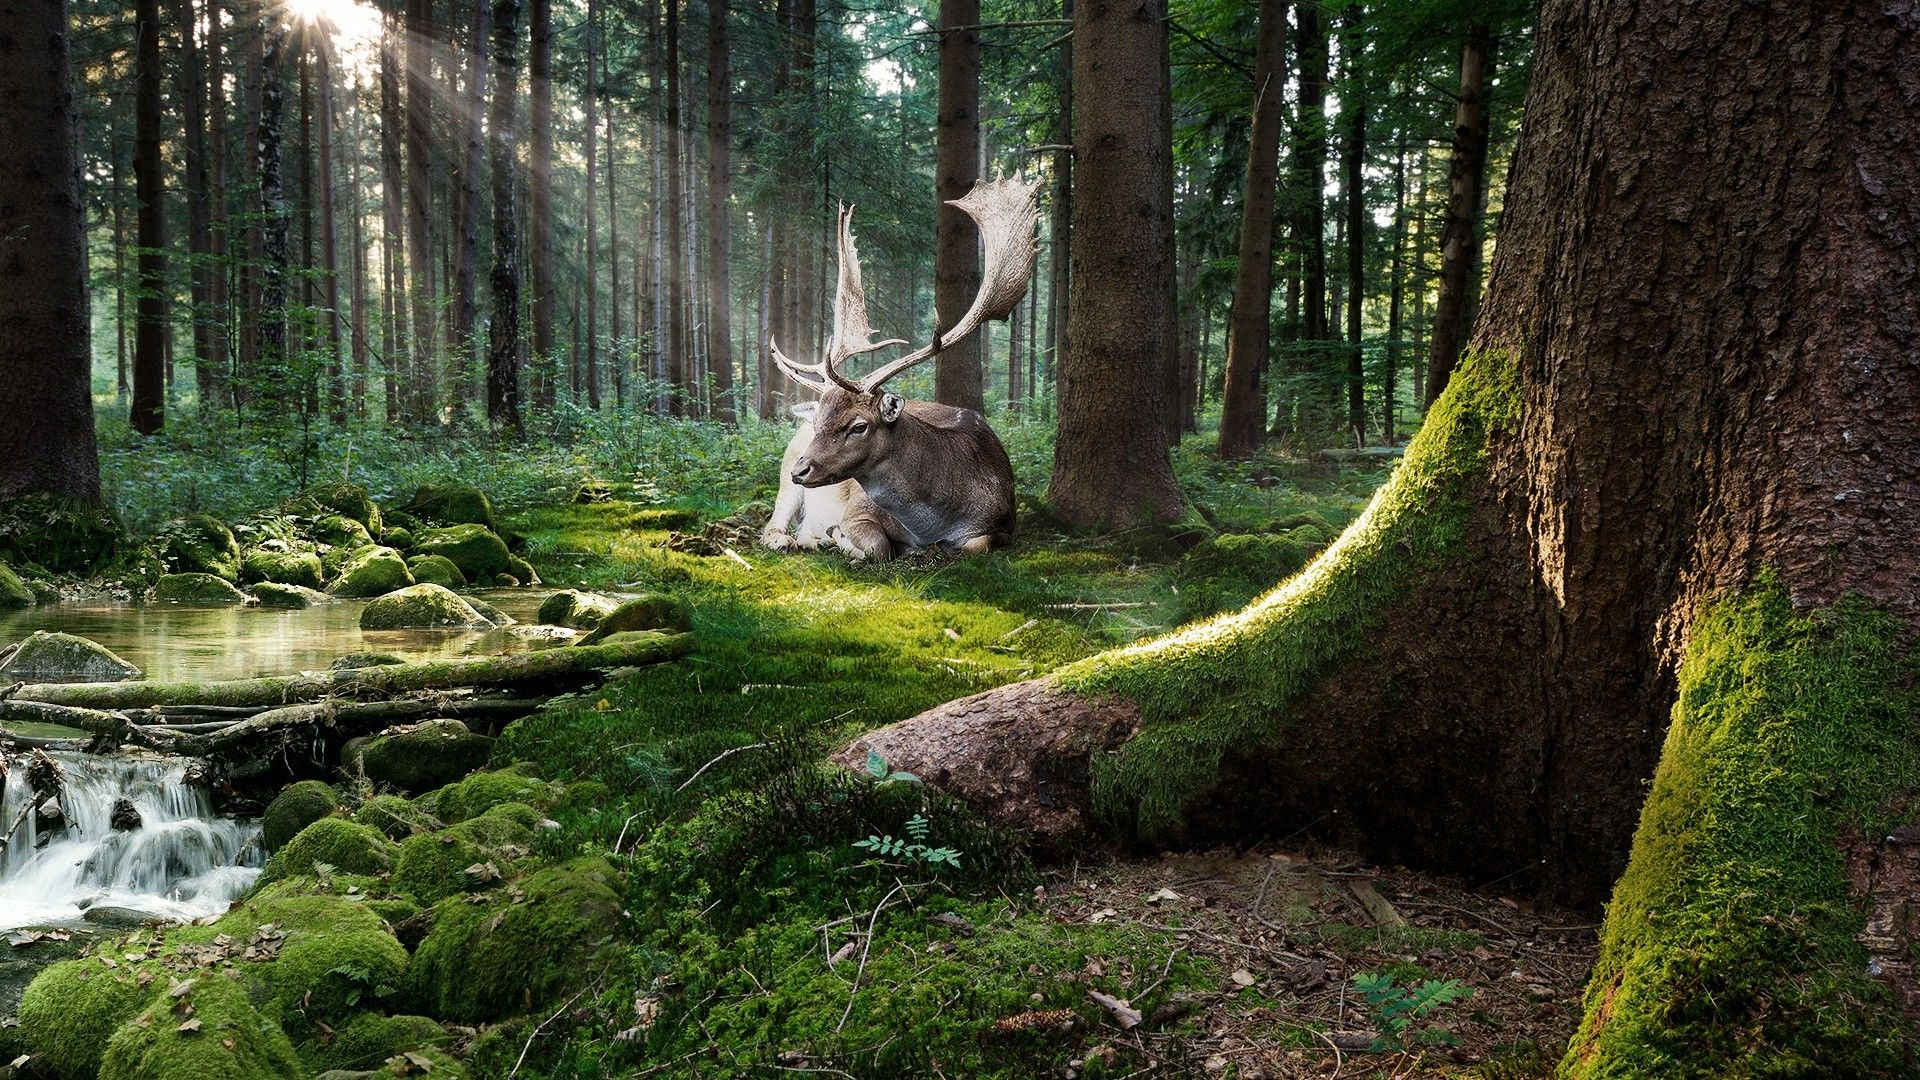 Nature Trees Forest Moss Animals Deer Sun Rays Stones Water Stream Adobe Photoshop Wallpaper Nature Forest Forest Wallpaper